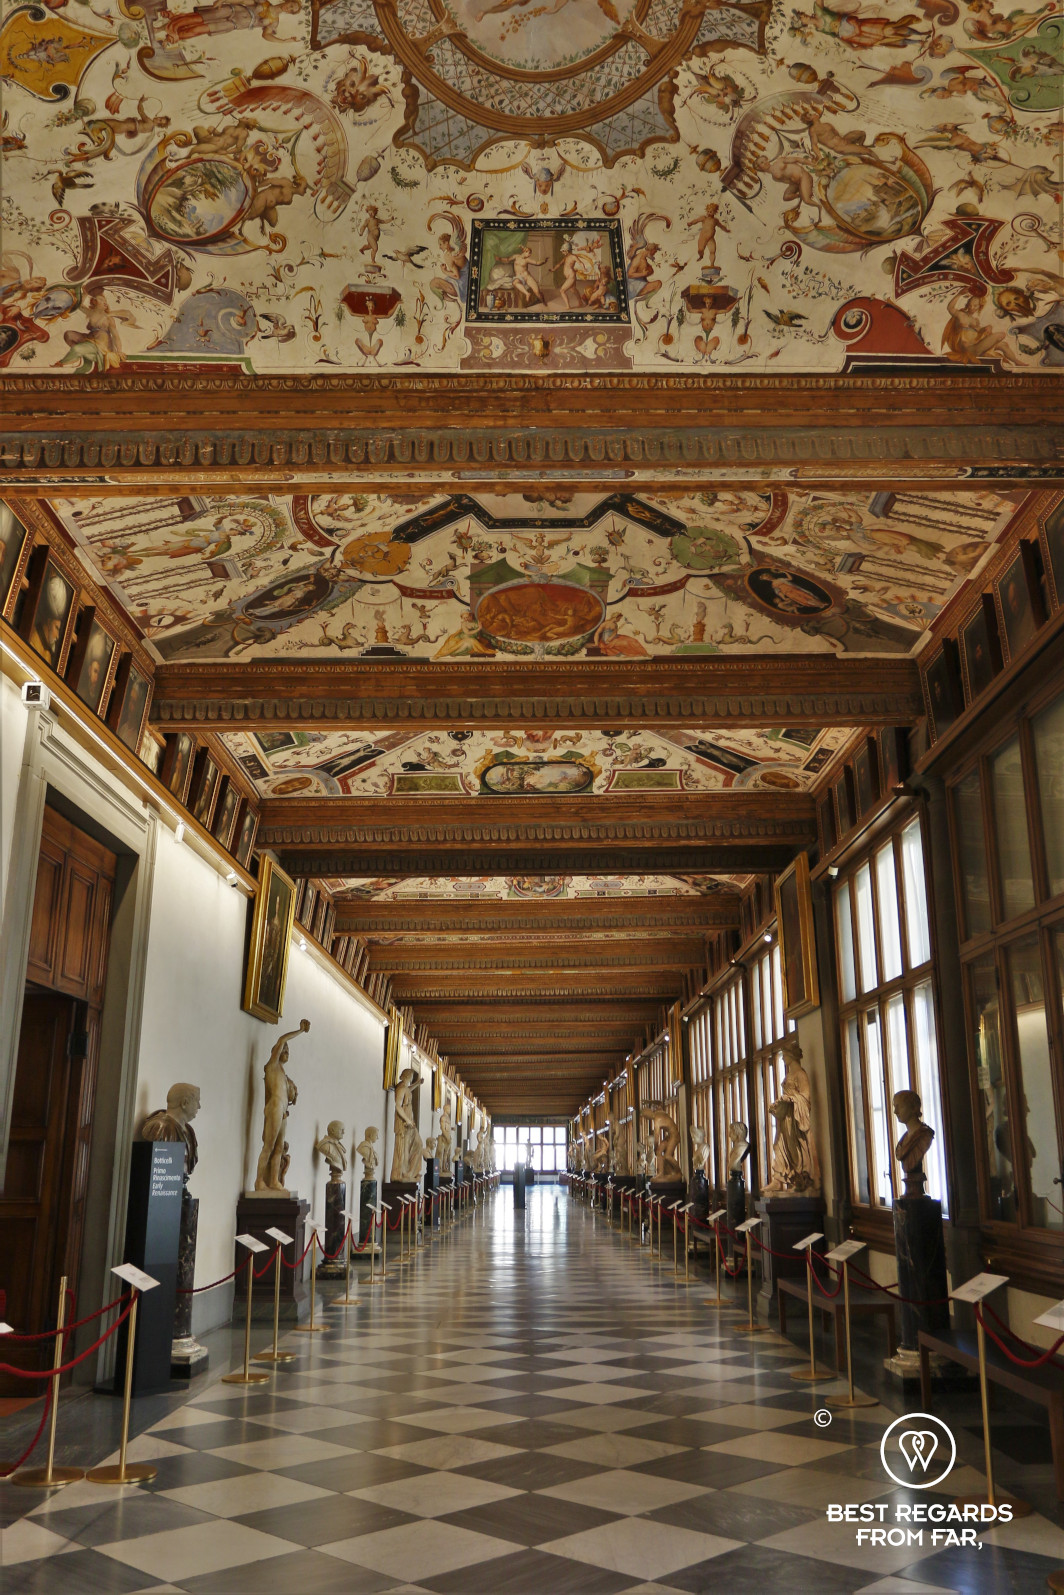 The corridor in the Uffizi museum in Florence, Italy